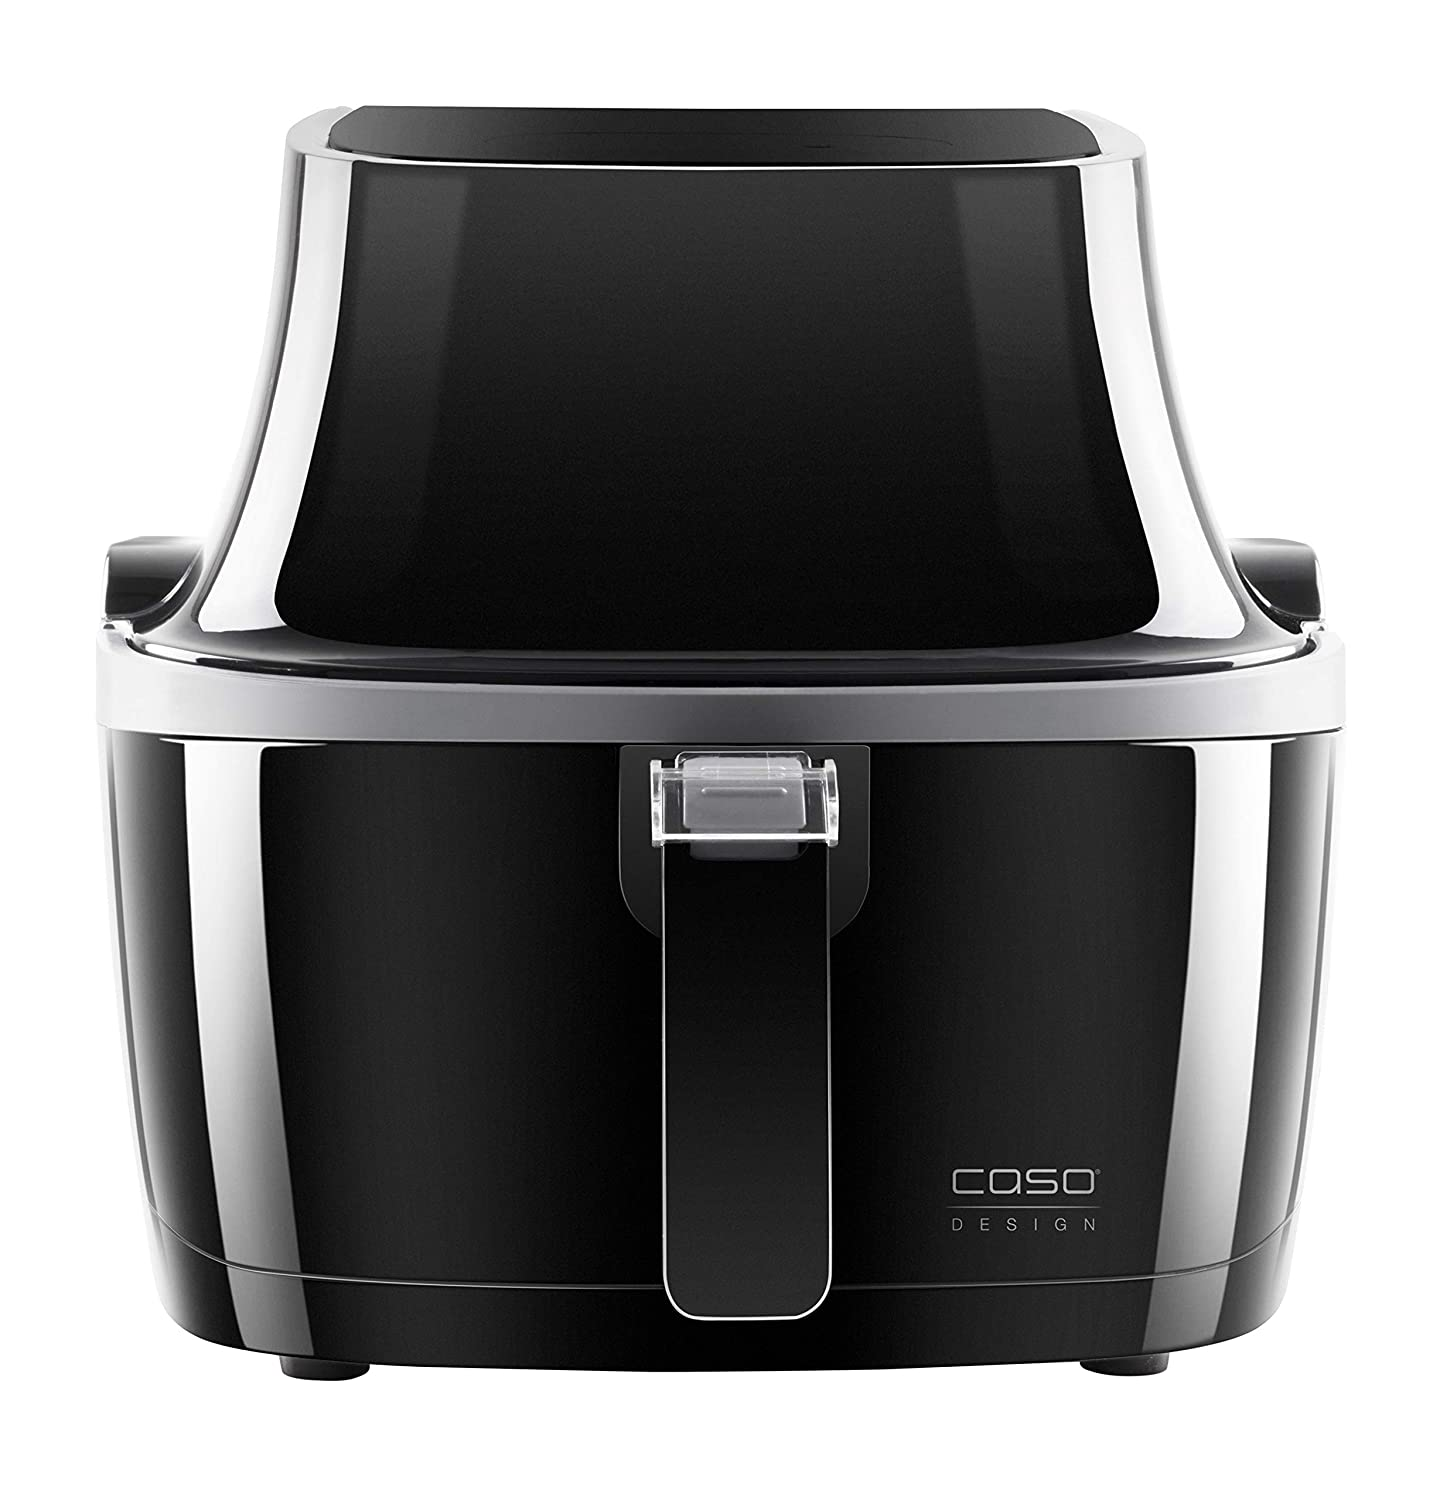 Caso Design AF.400 Fat-Free Convection Air Fryer with Memory Function, 1, Stainless